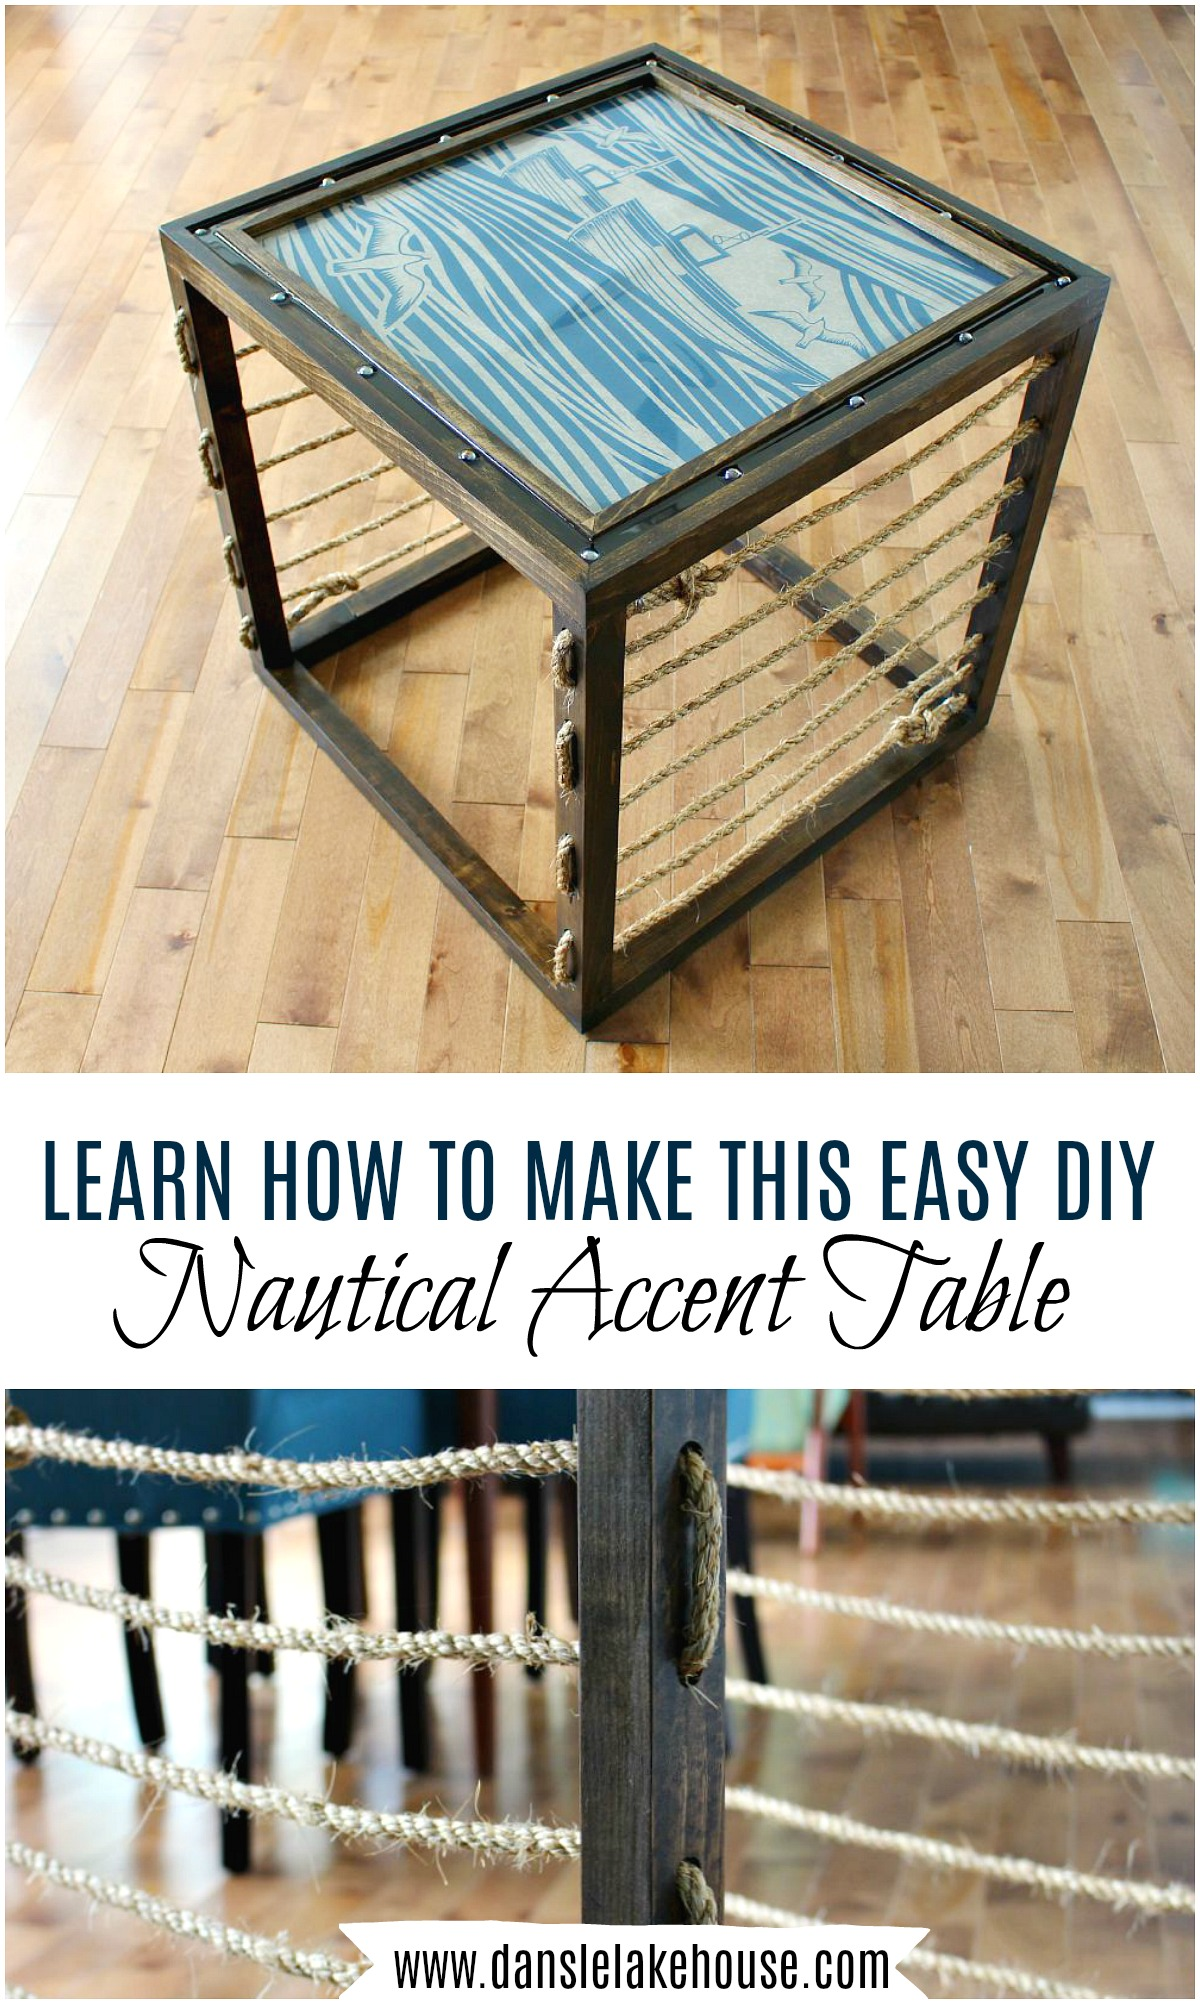 DIY Nautical Accent Table - Learn How to Build a Side Table, You'd Be Surprised How EASY it is! #nautical #coastaldecor #diytabe #woodworking